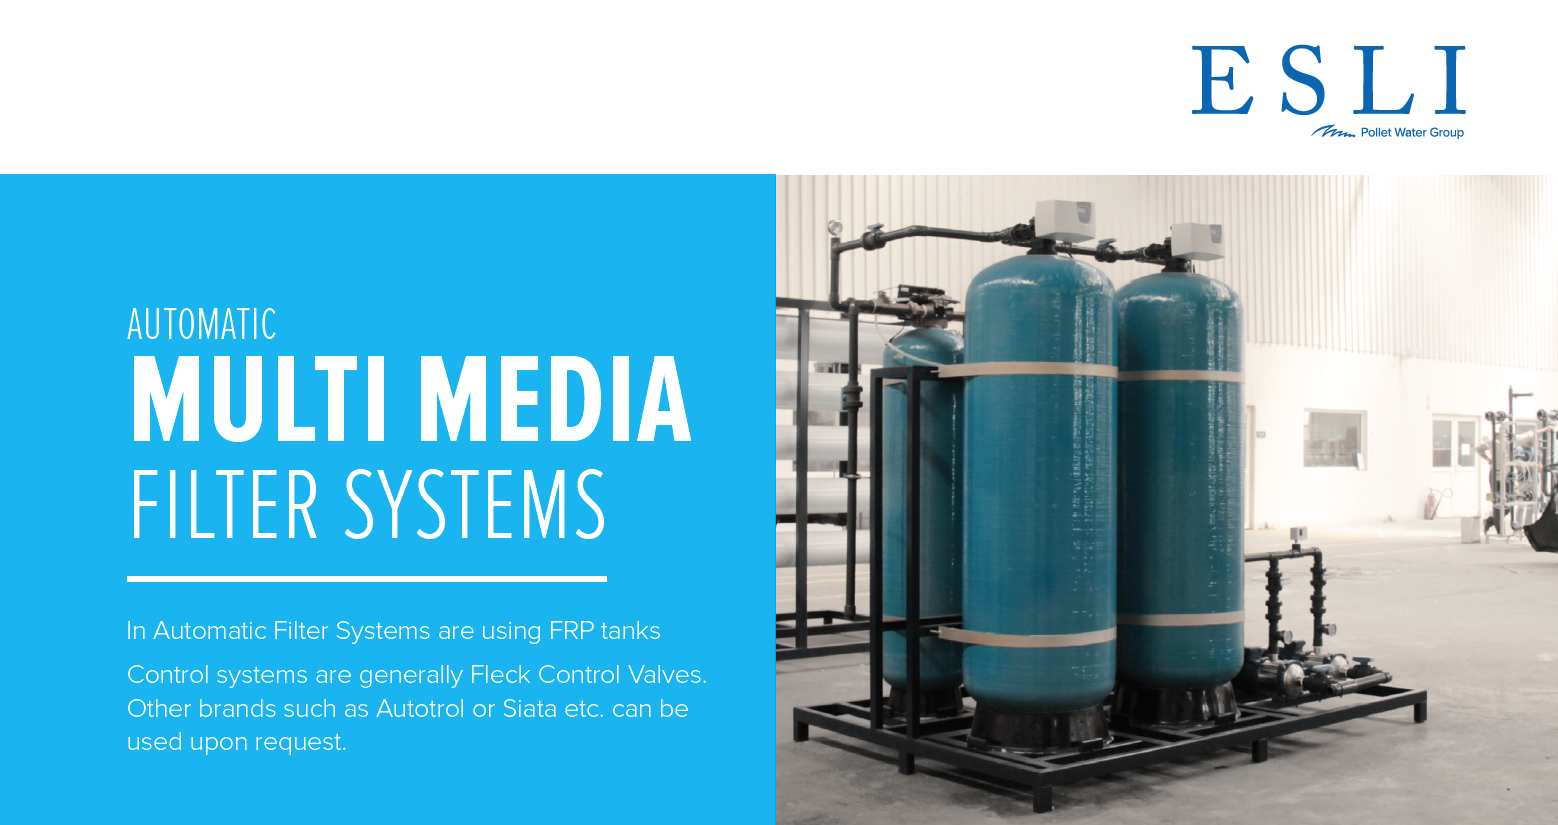 AUTOMATIC MULTI MEDIA FILTER SYSTEMS_2